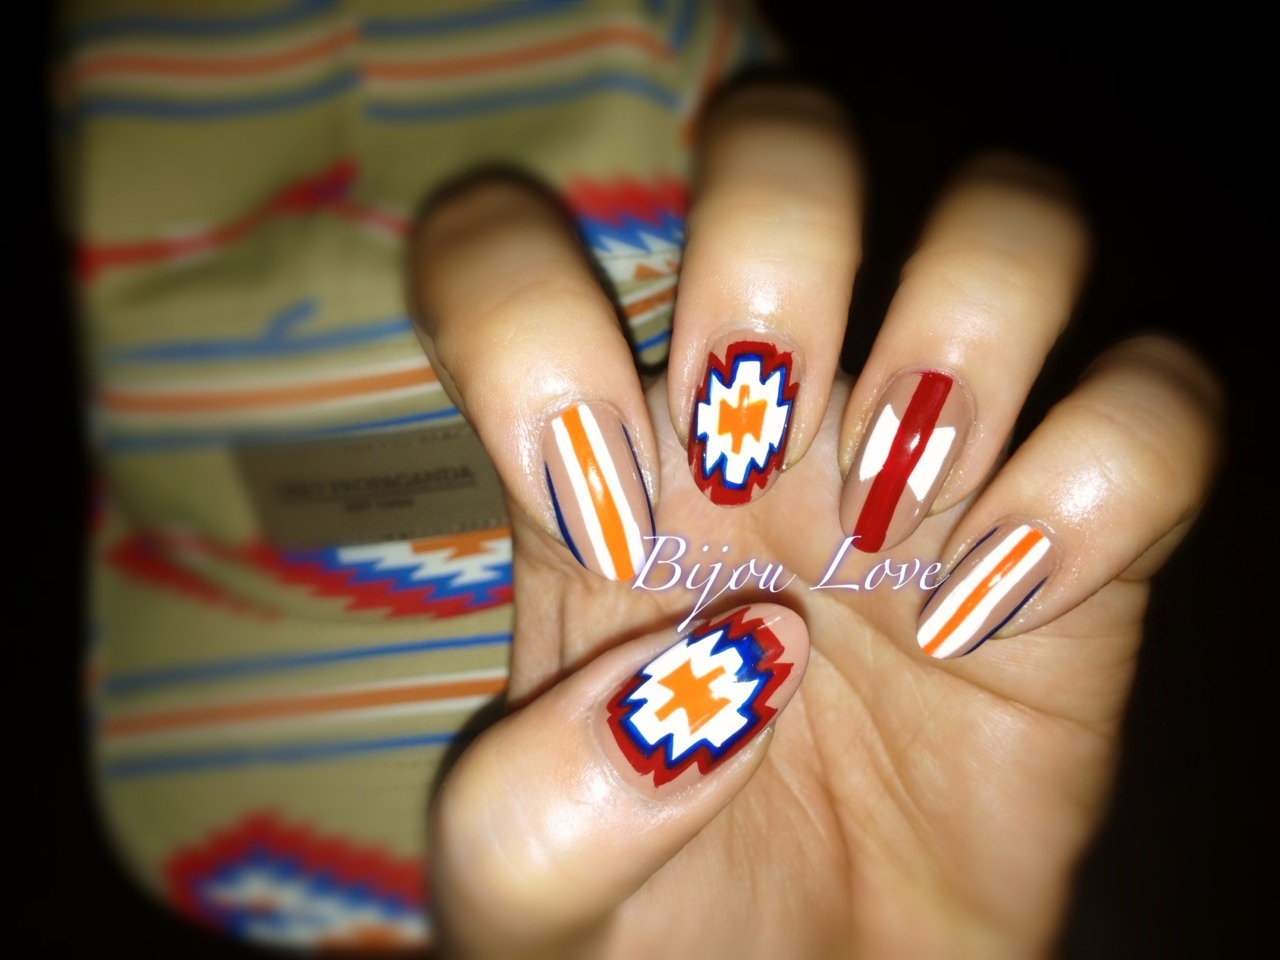 bijoulovebyglow:  31 day nail challenge day 26: inspired by a PATTERN, used the pattern from my fiancé's hat